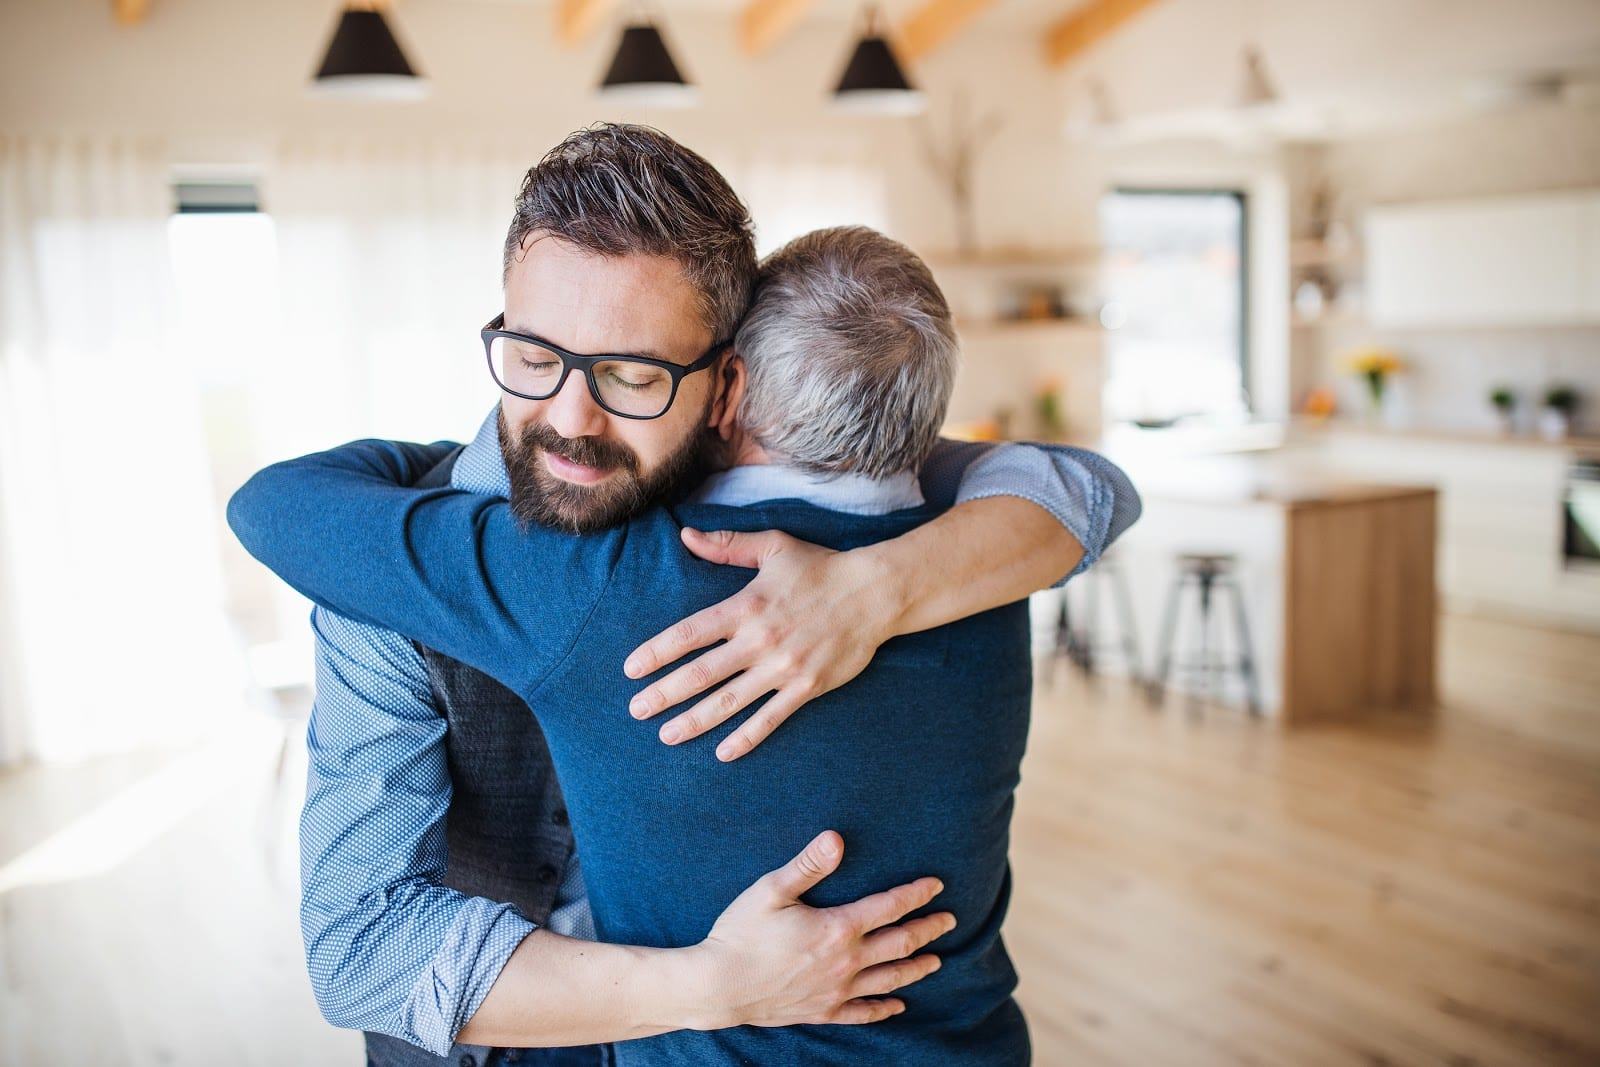 adult son and elderly father hug